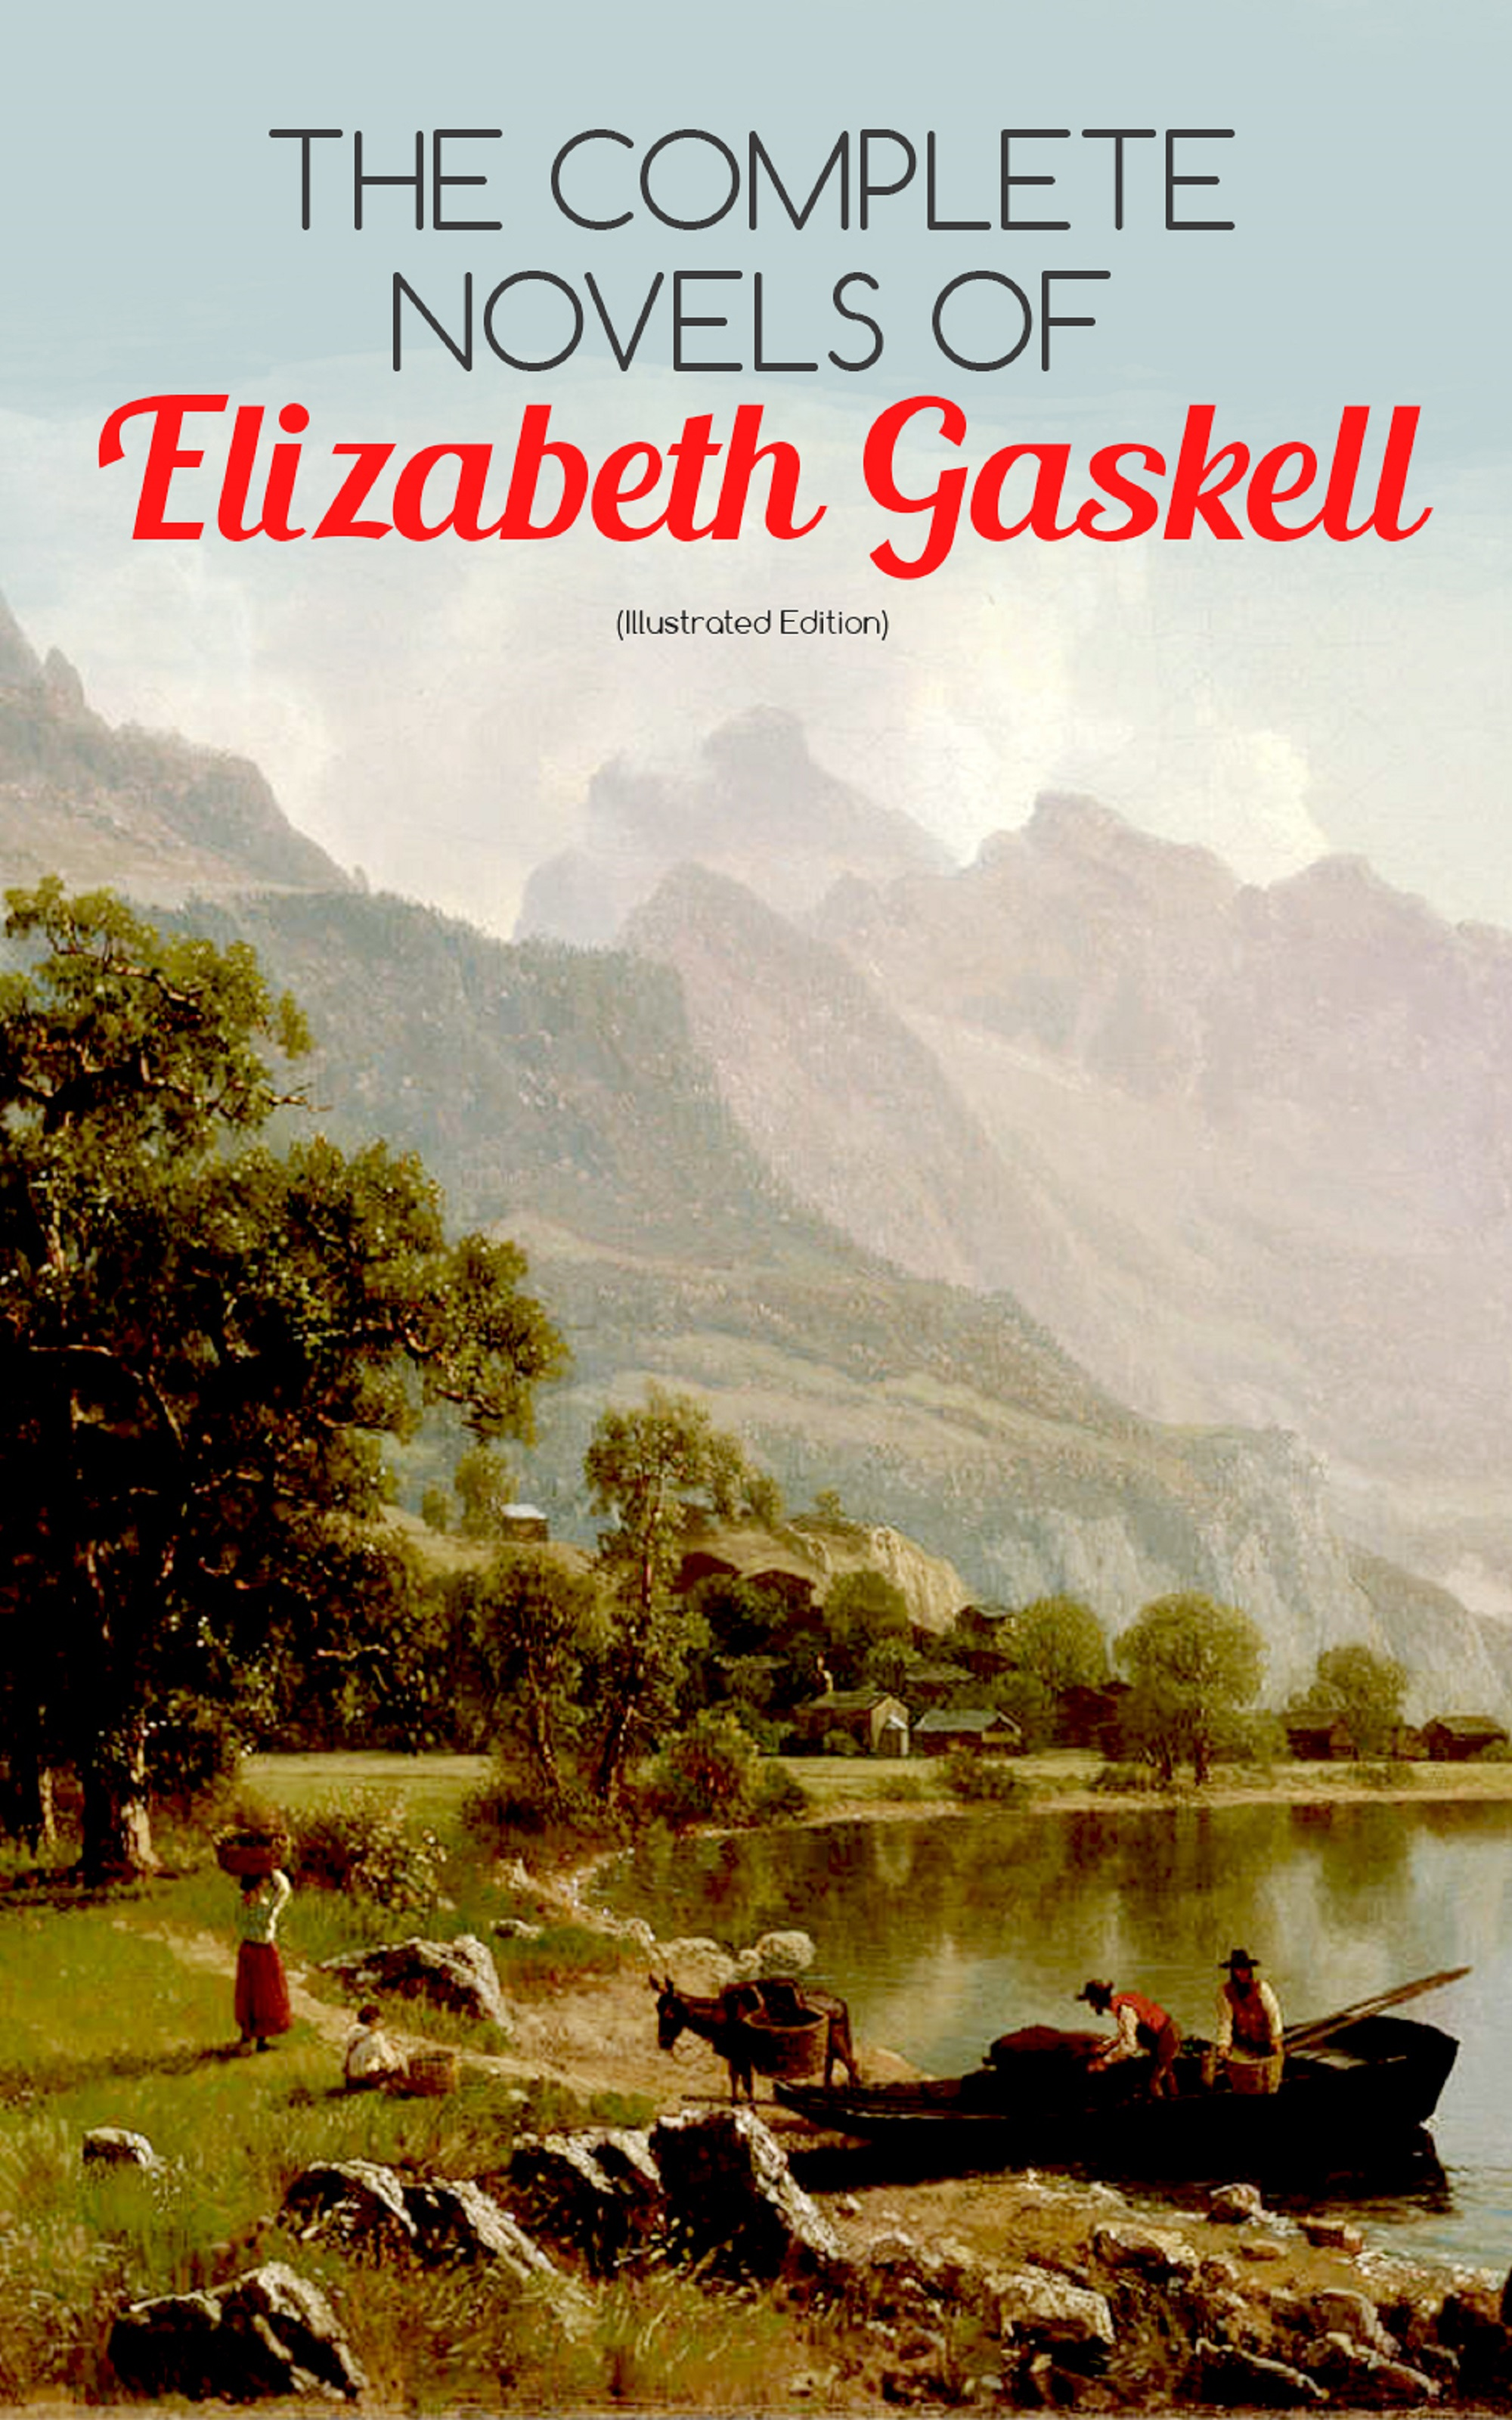 Elizabeth Gaskell The Complete Novels of Elizabeth Gaskell (Illustrated Edition) jill nelson elizabeth legacy of lies